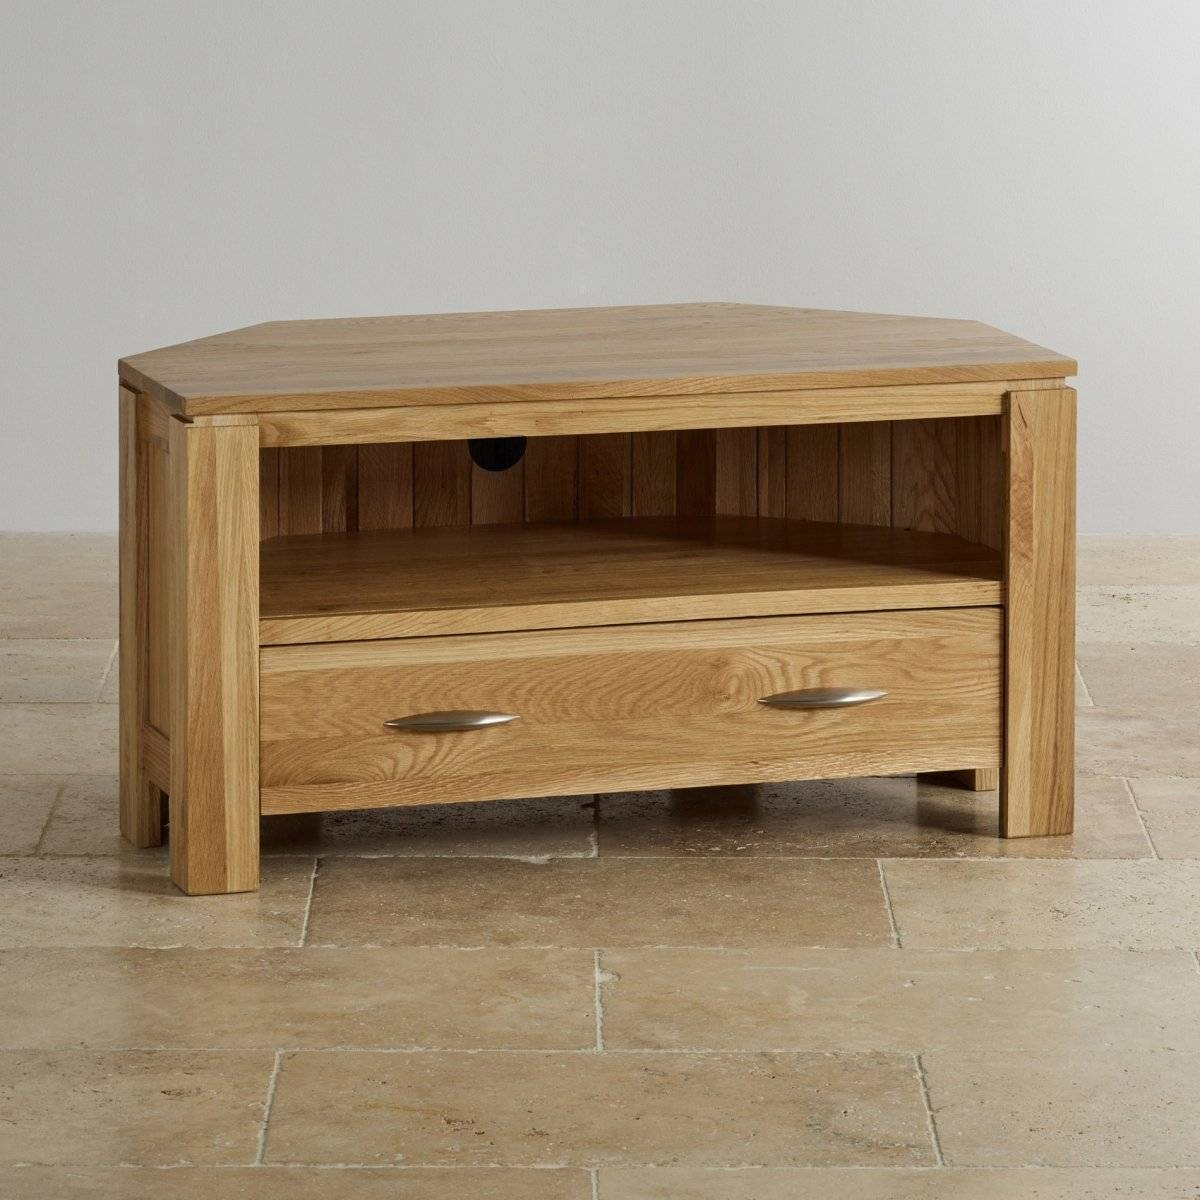 Galway Corner Tv + Dvd Cabinet In Solid Oak | Oak Furniture Land With Regard To Corner Tv Cabinets (View 8 of 15)